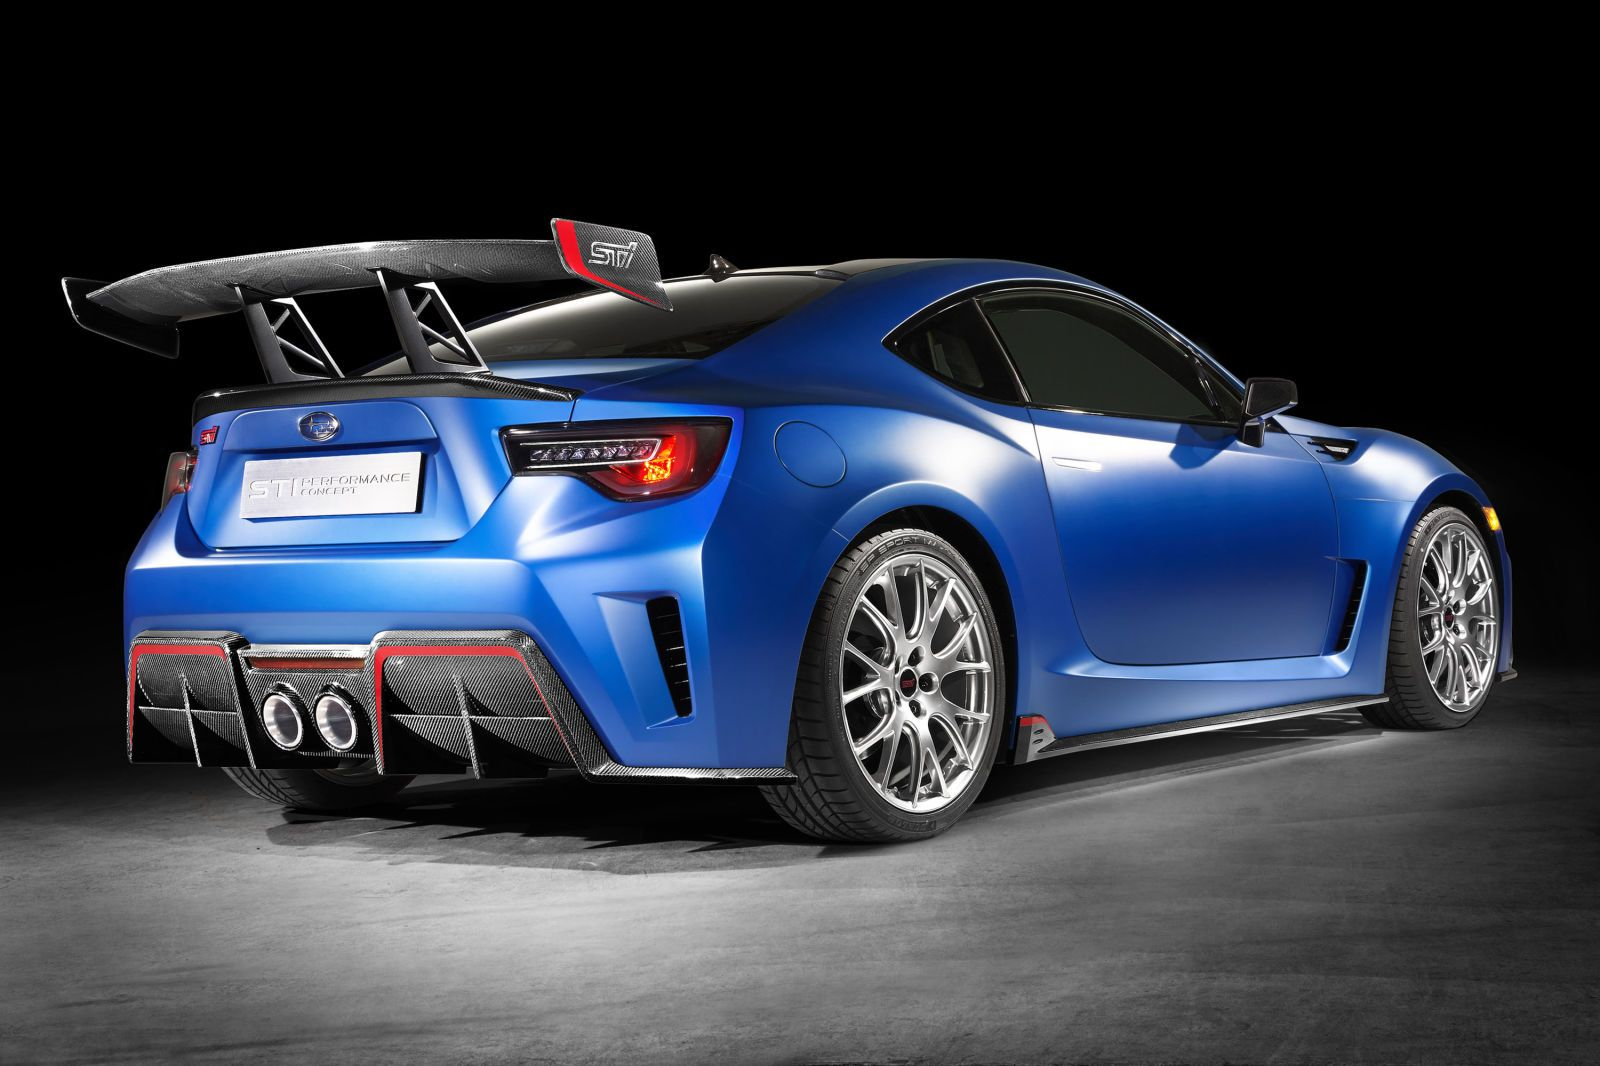 Best 20 subaru brz sti ideas on pinterest used subaru brz best 20 subaru brz sti ideas on pinterest used subaru brz scion frs and scion sports car vanachro Image collections